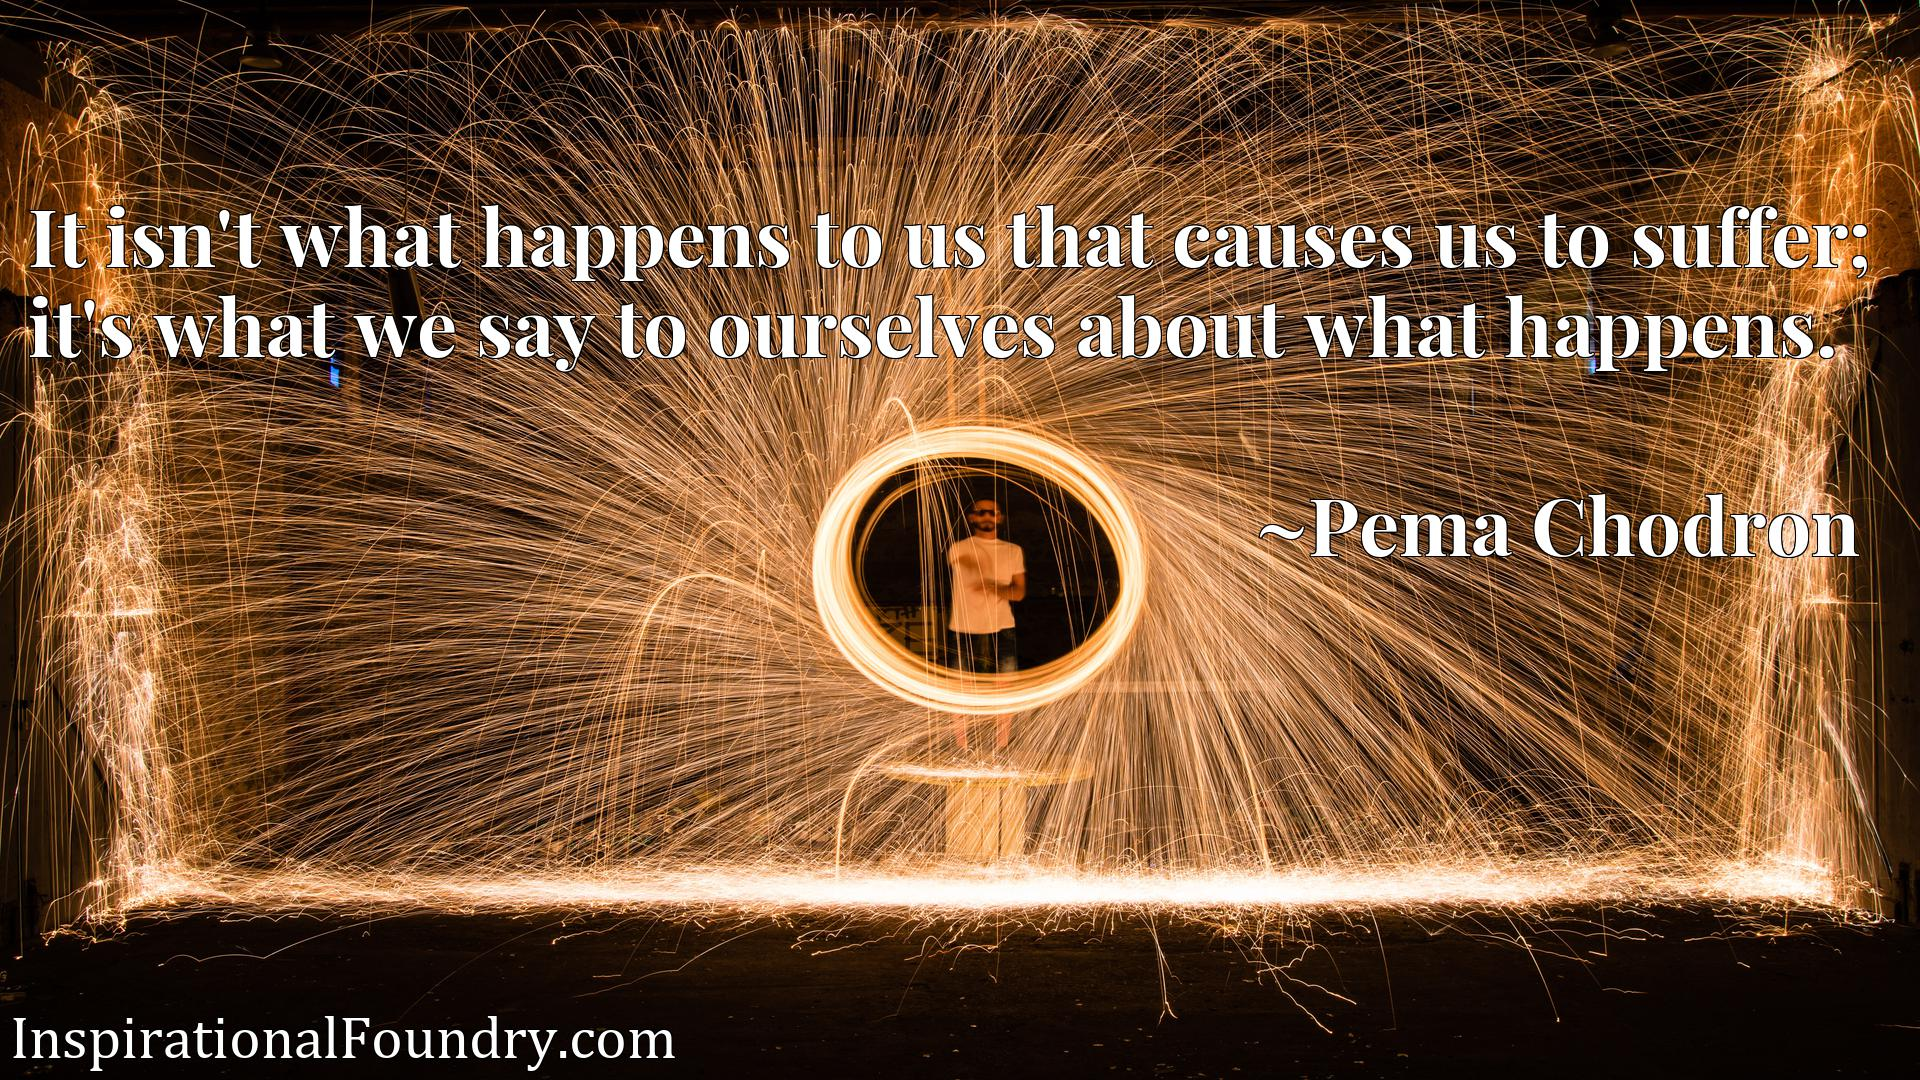 It isn't what happens to us that causes us to suffer; it's what we say to ourselves about what happens.